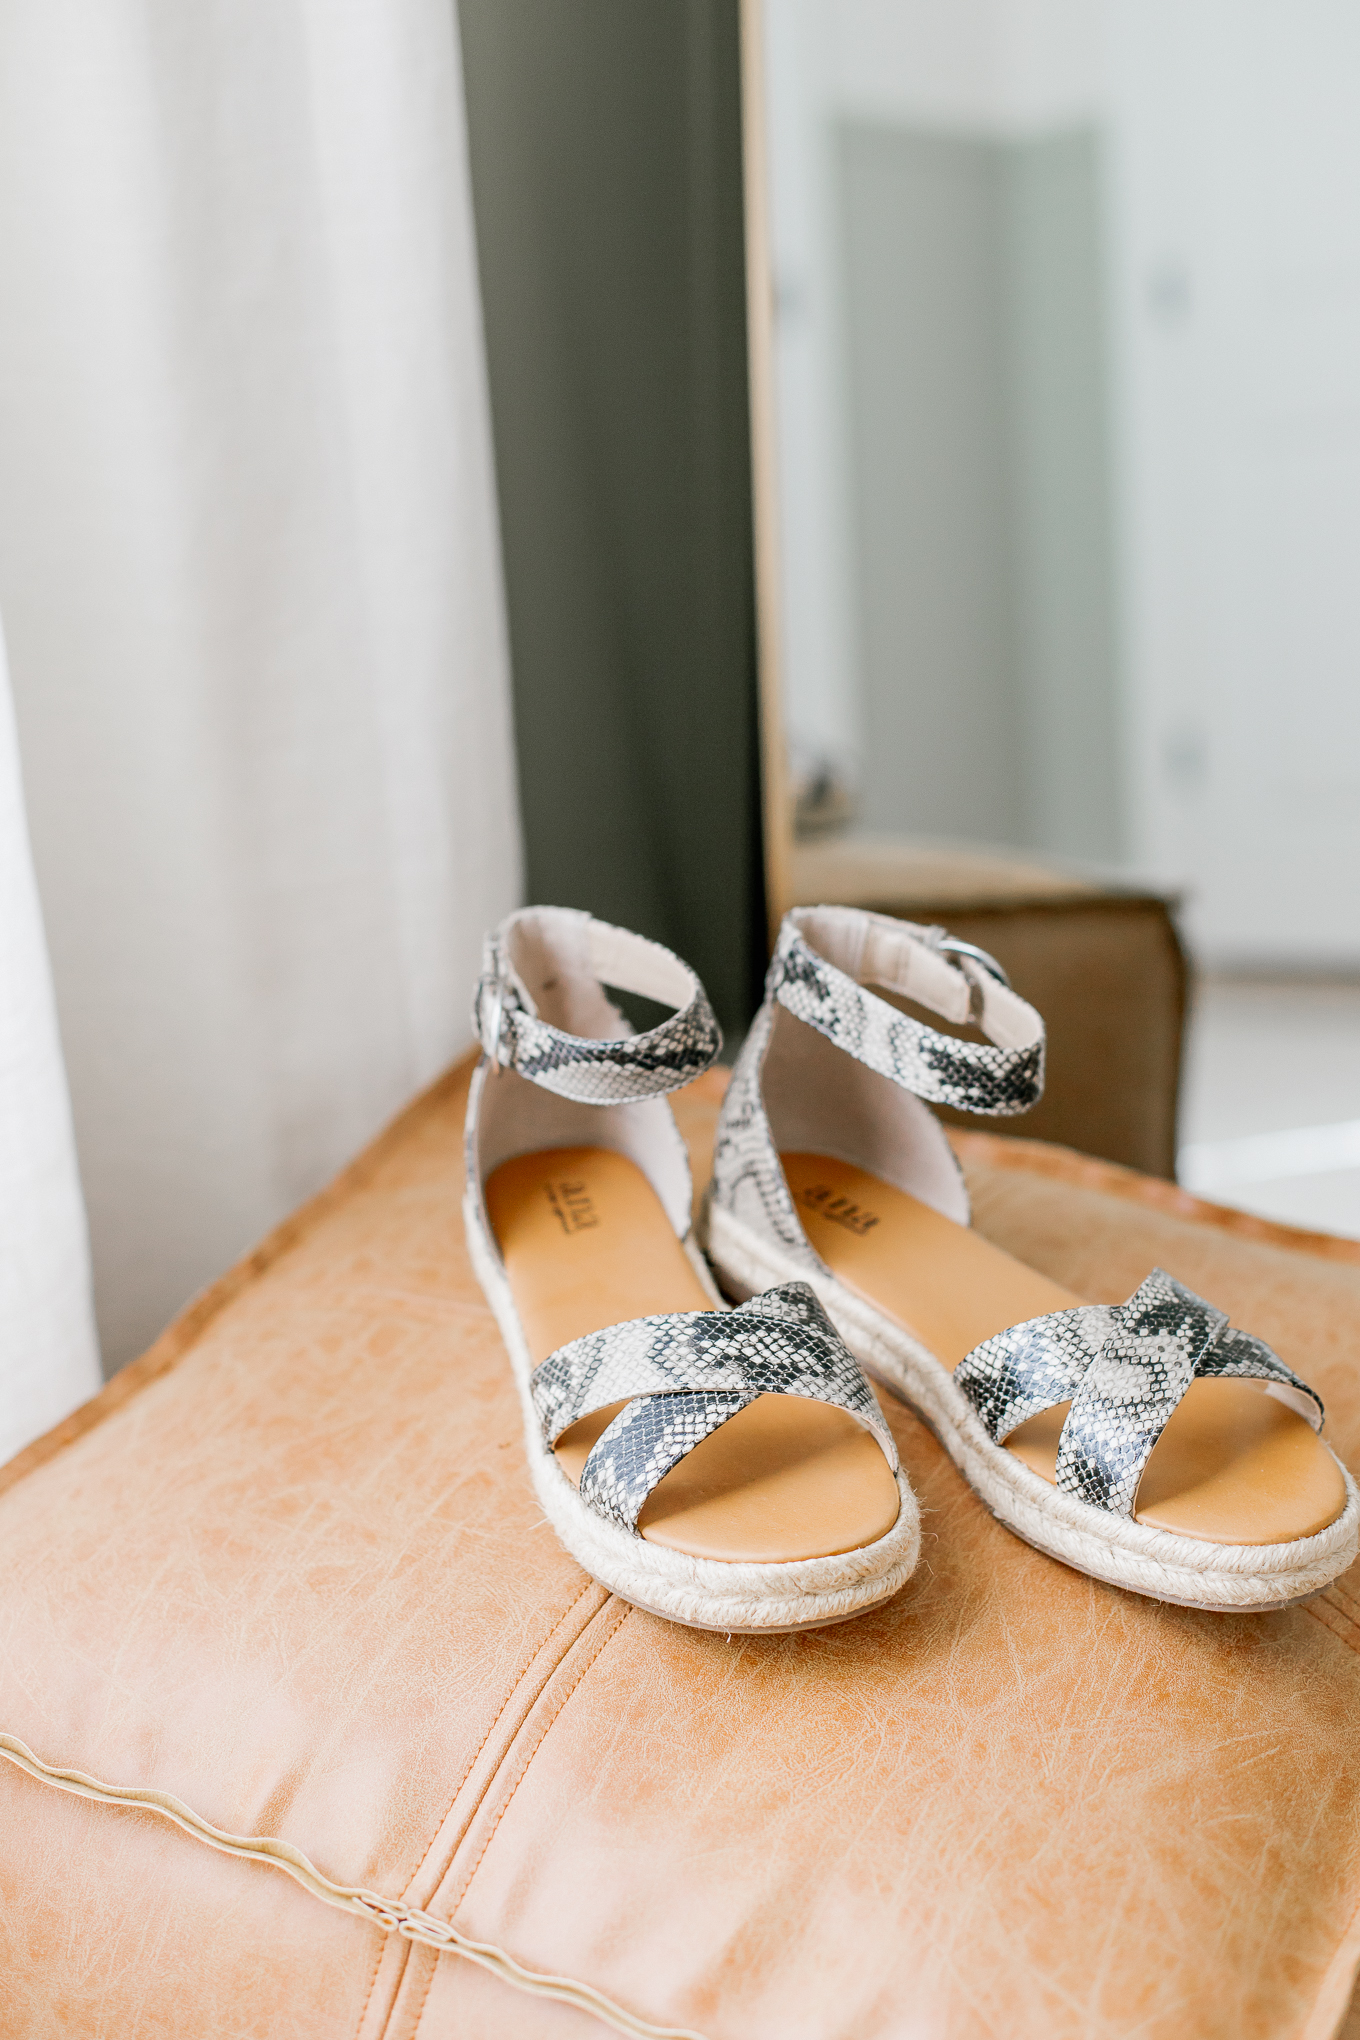 The BEST Affordable Spring Sandals for Women | Snakeskin Ankle Strap Sandals | Louella Reese